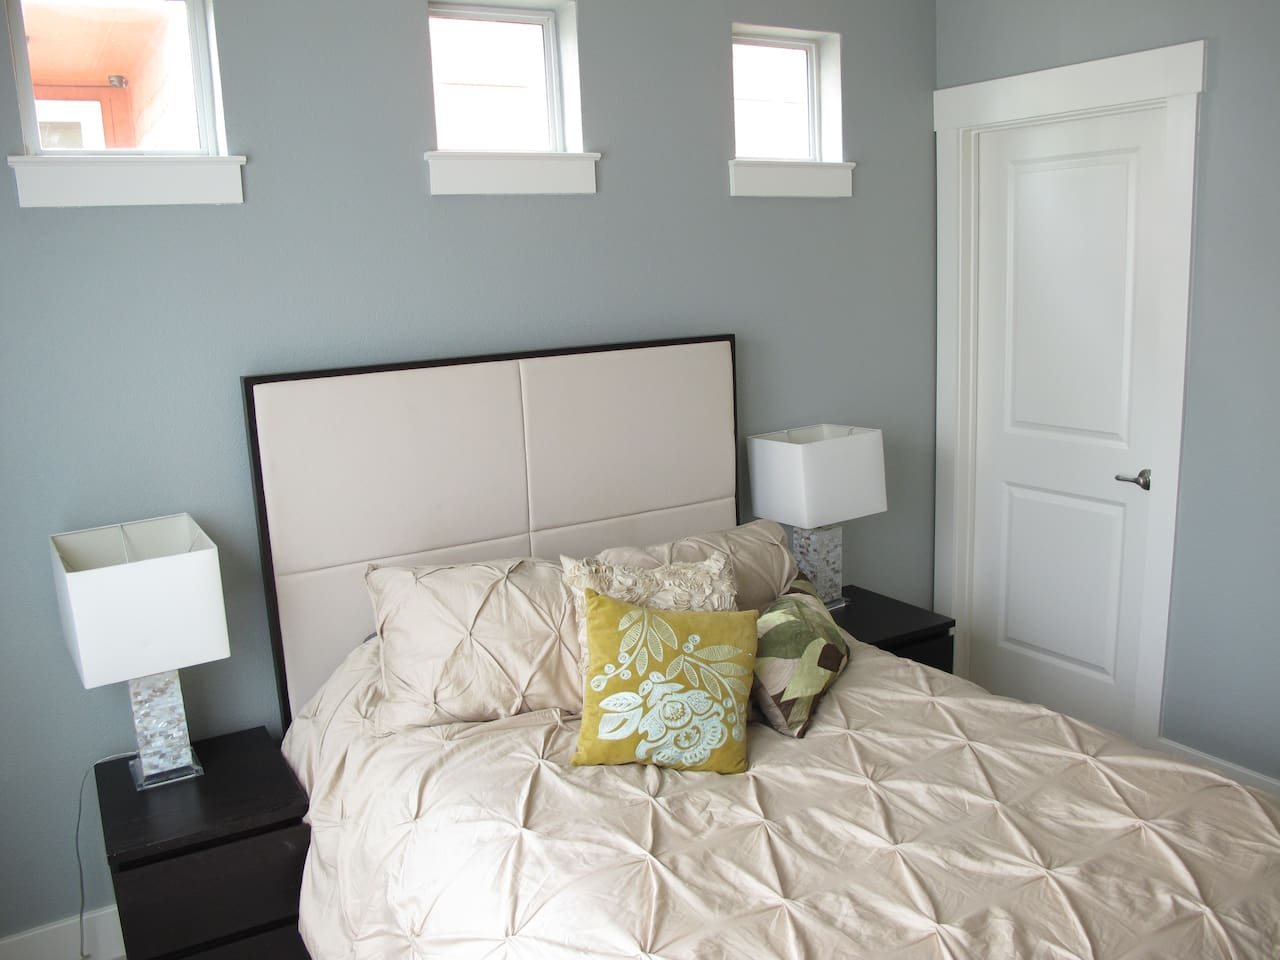 Comfy room with has full size walk in closet